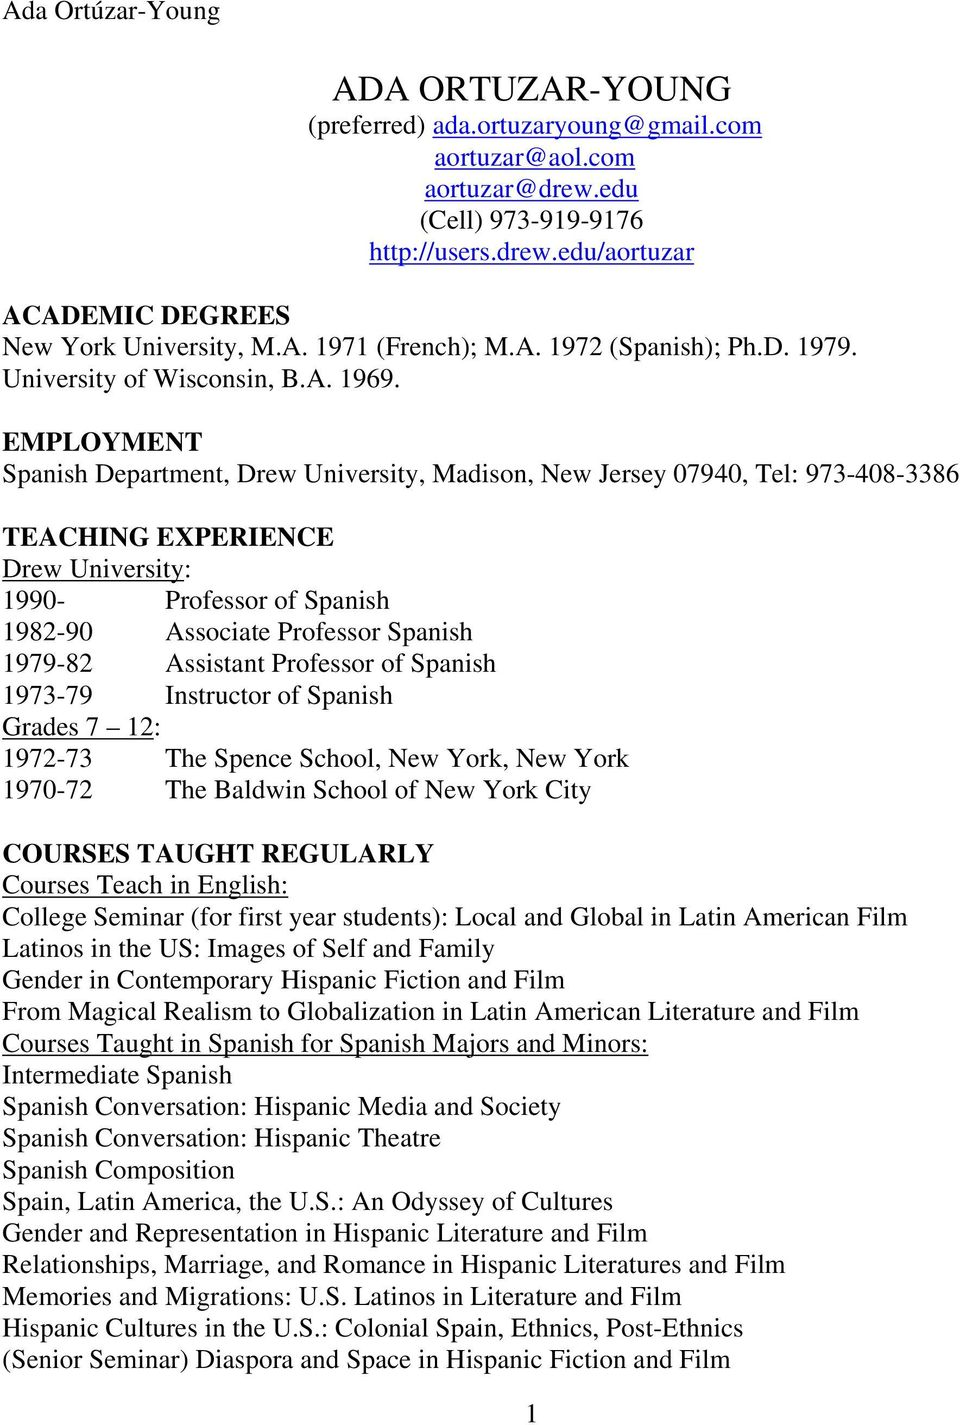 EMPLOYMENT Spanish Department, Drew University, Madison, New Jersey 07940, Tel: 973-408-3386 TEACHING EXPERIENCE Drew University: 1990- Professor of Spanish 1982-90 Associate Professor Spanish